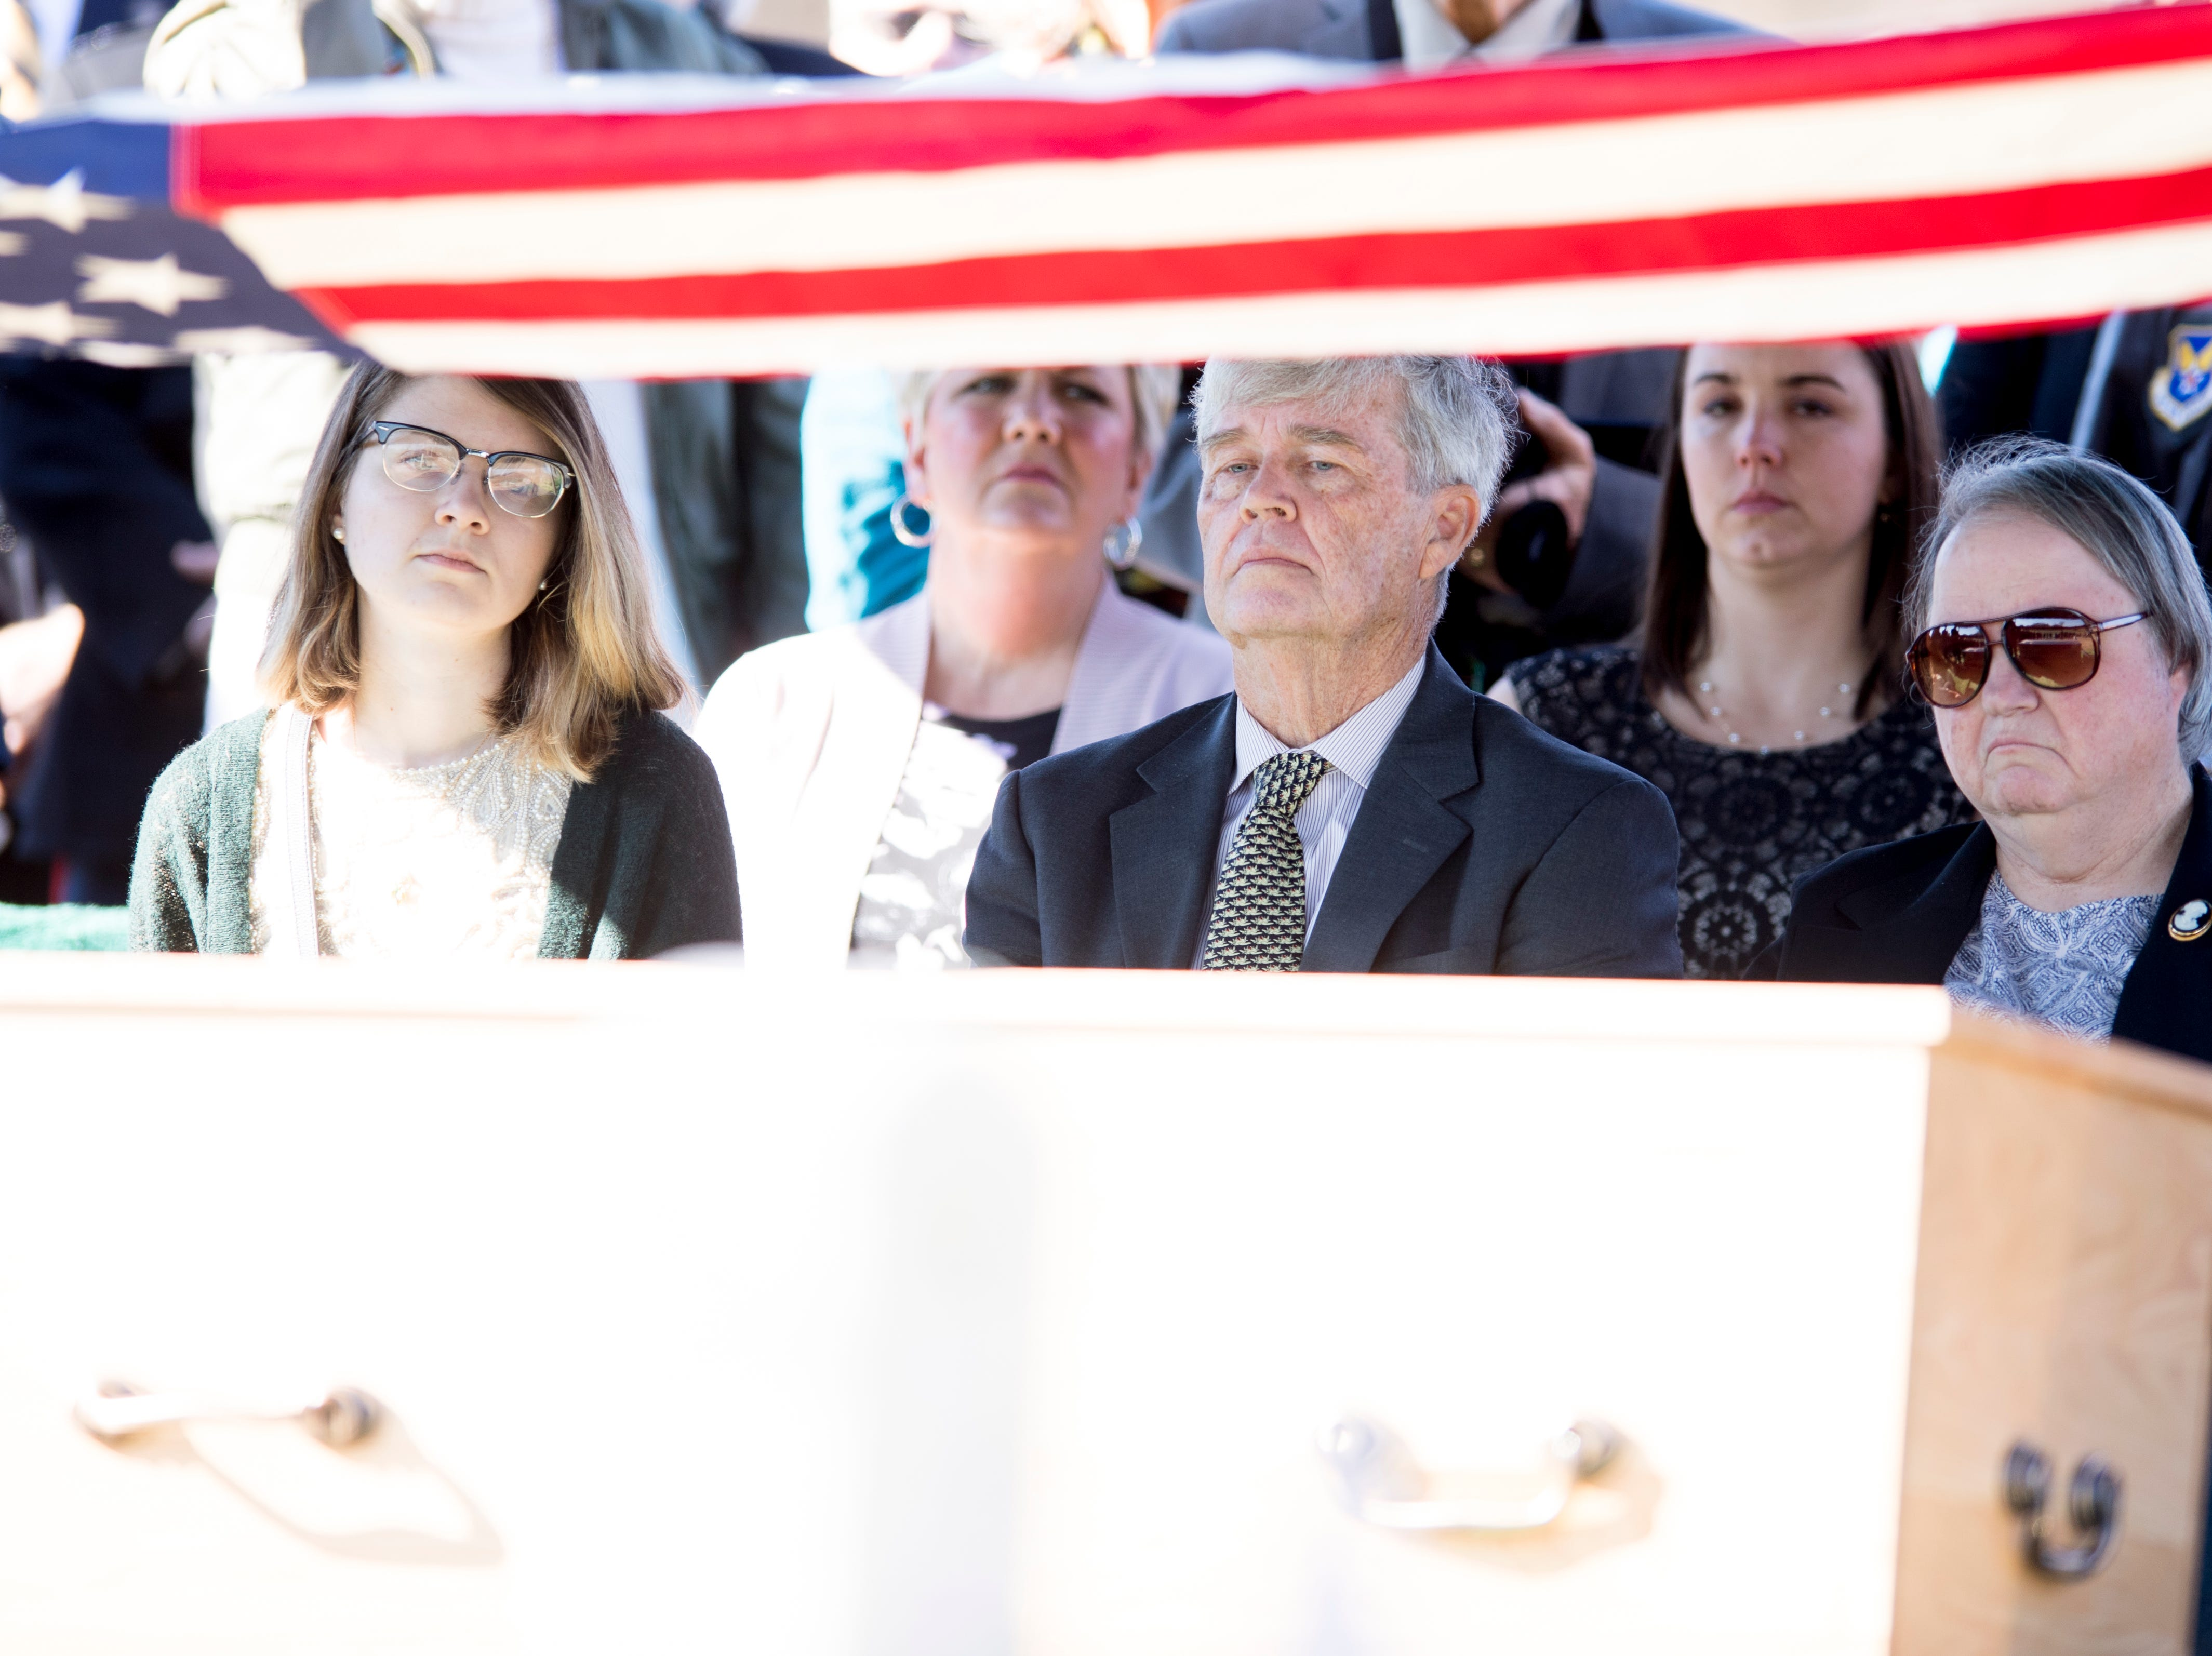 From left, Emmalee Mariner, daughter of Rosemary Mariner, the US Navy's first female fighter pilot, Tommy Mariner, husband of Rosemary, and Libby Merims, sister of Rosemary, listen during a graveside service at New Loyston Cemetery in Maynardville, Tennessee on Saturday, February 2, 2019. Mariner died January 24th of cancer.